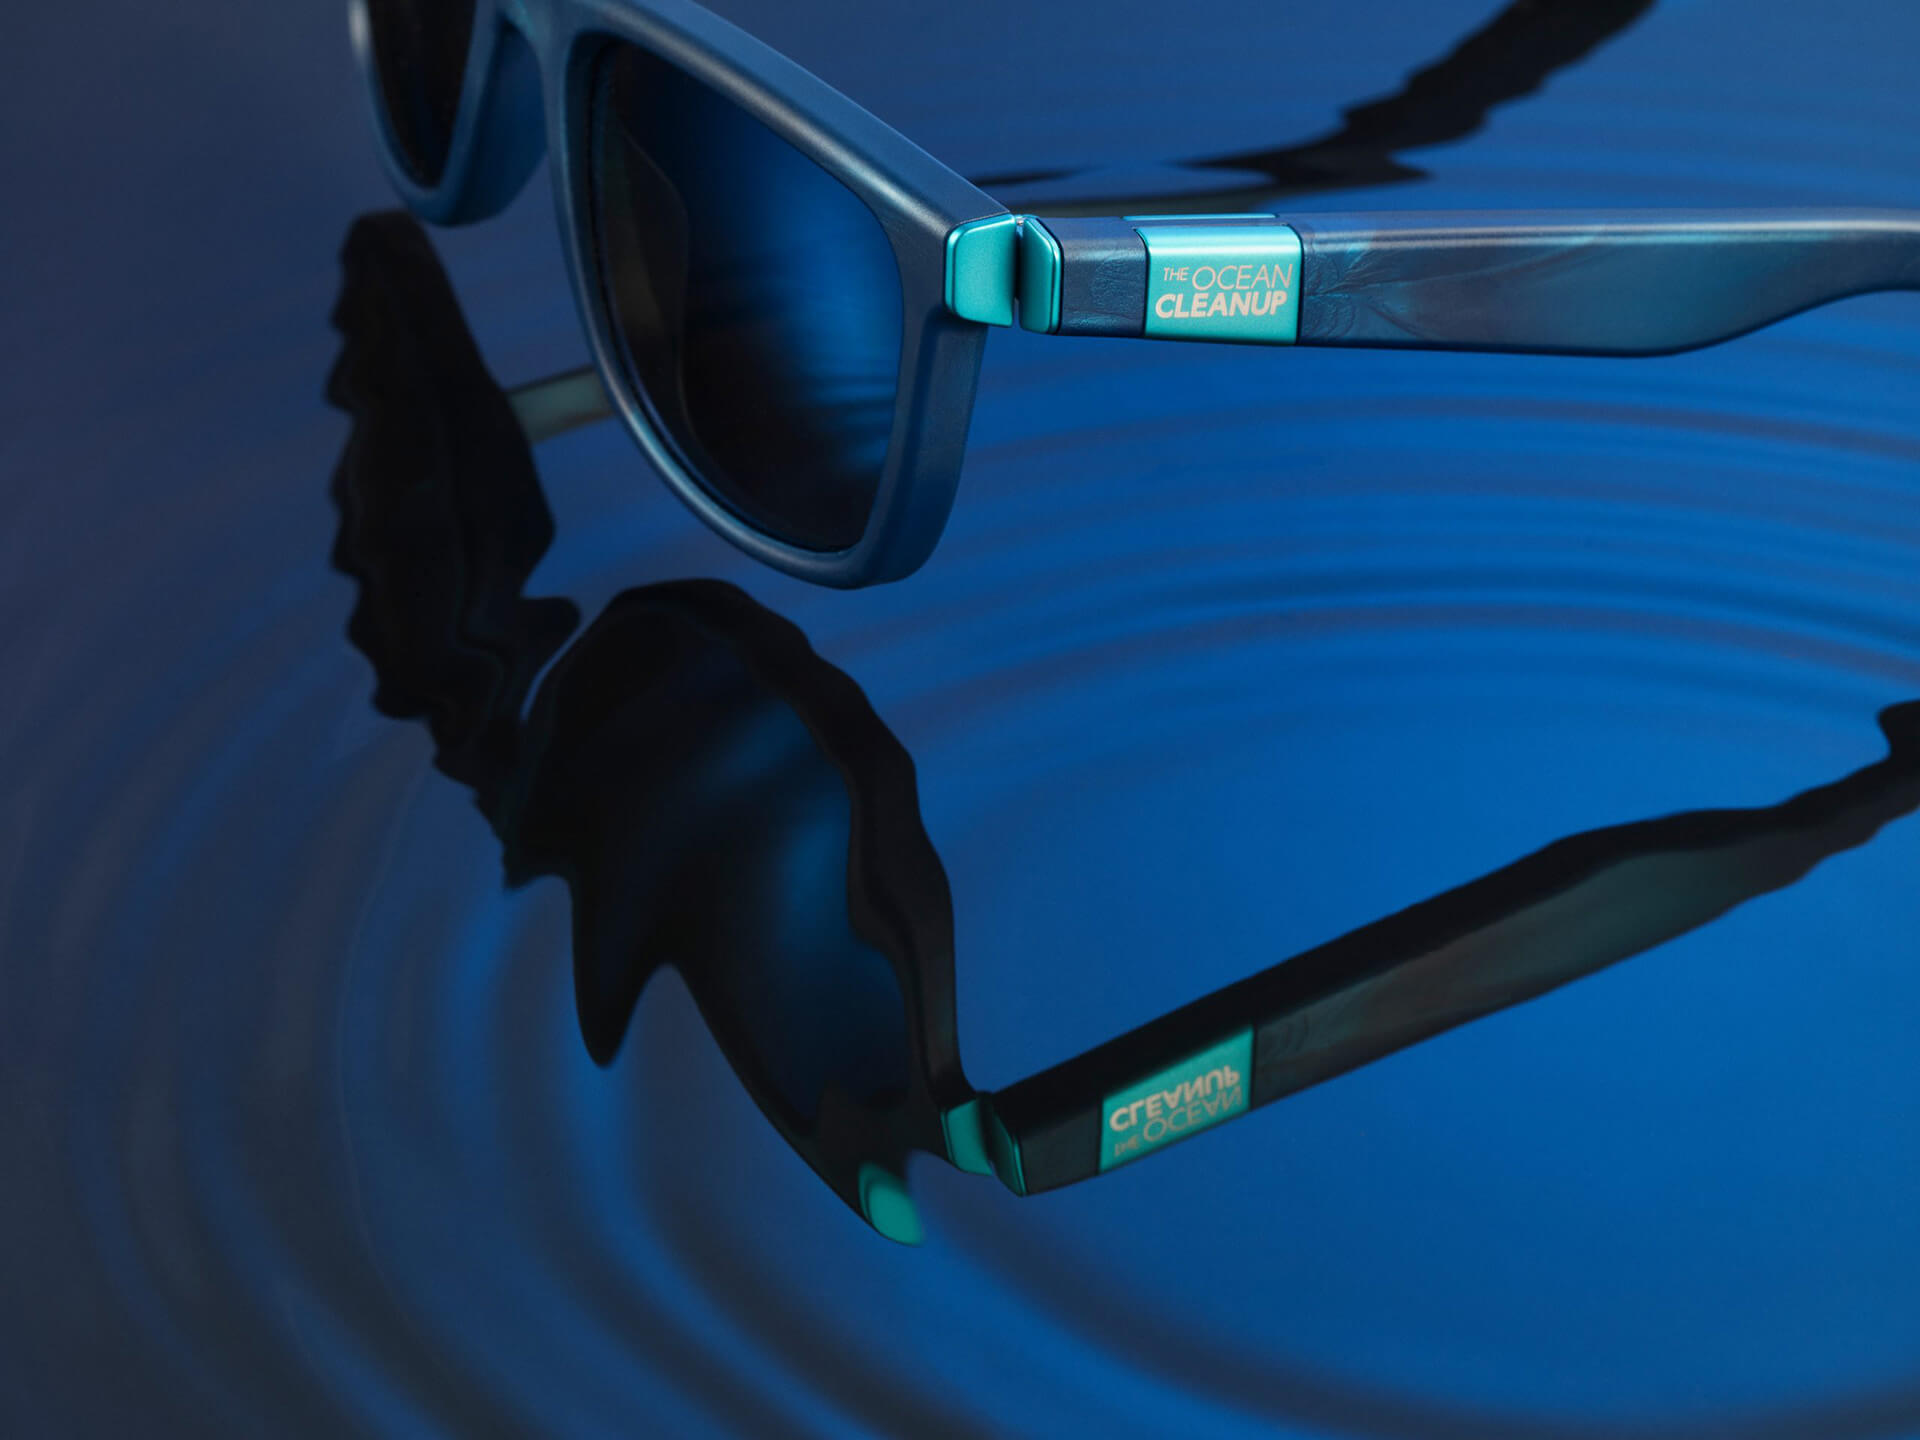 Distinct teal blue hinges | The Ocean Cleanup Sunglasses | STIRworld